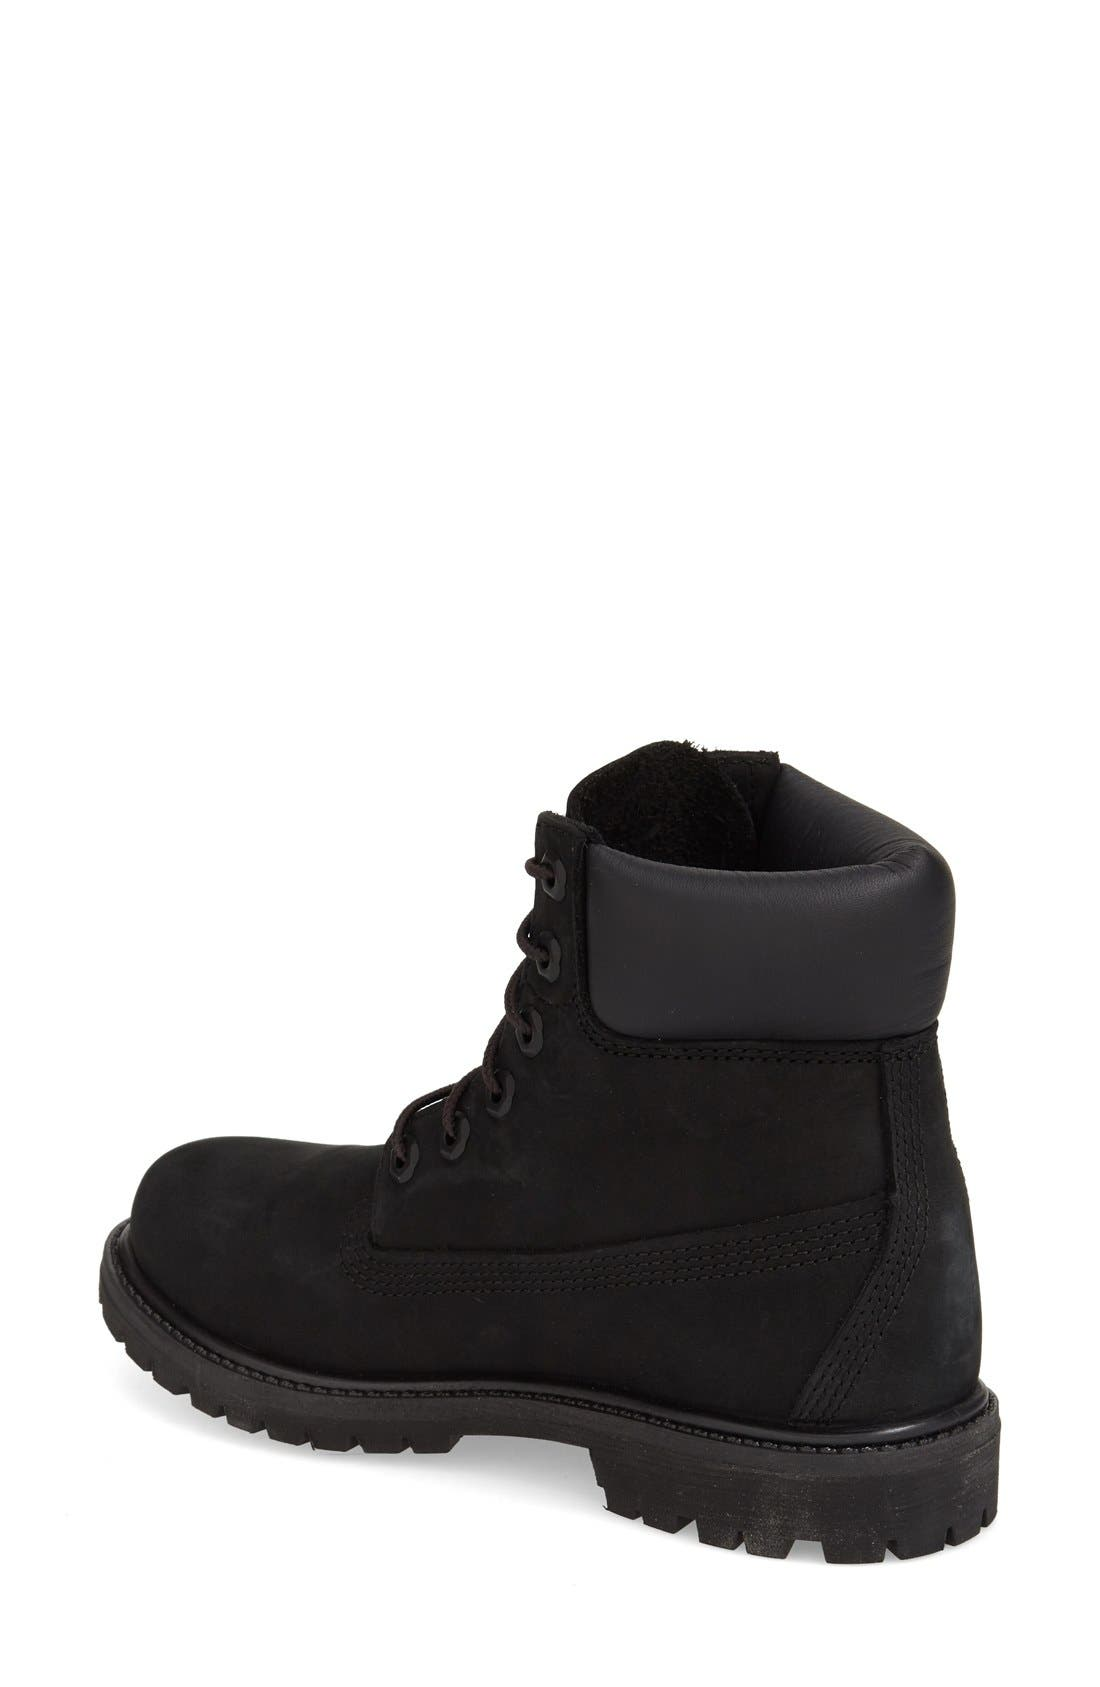 TIMBERLAND, 6 Inch Premium Waterproof Boot, Alternate thumbnail 2, color, BLACK NUBUCK LEATHER